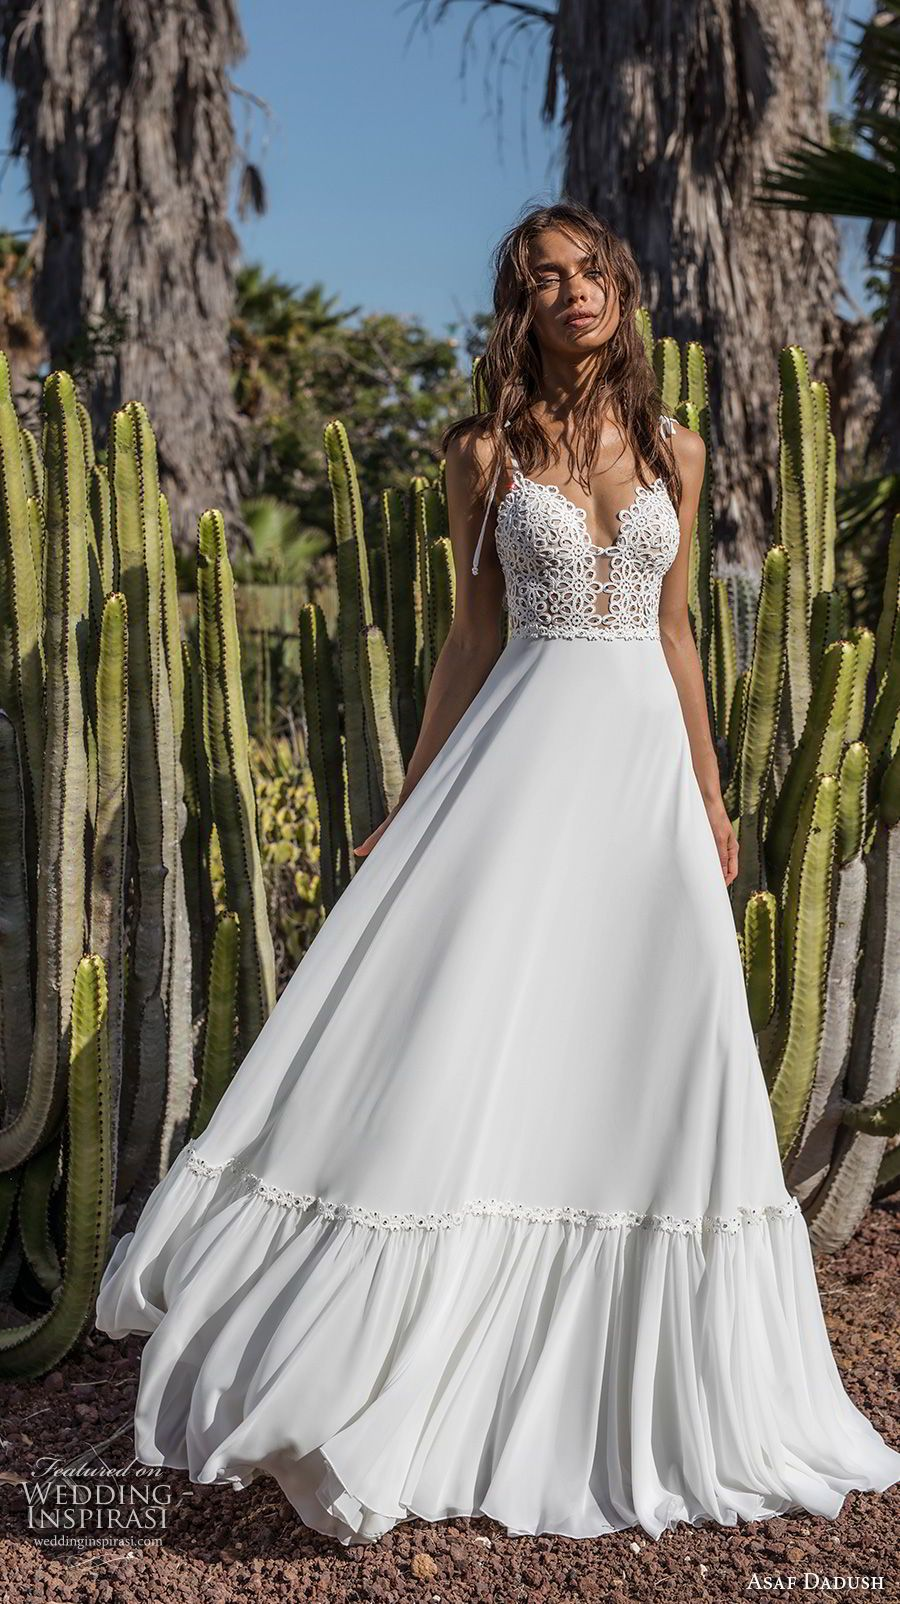 e6cf1b2ed29 asaf dadush 2018 bridal sleeveless spaghetti strap deep plunging sweetheart  neckline heavily embellished bodice bohemian a line wedding dress open back  ...